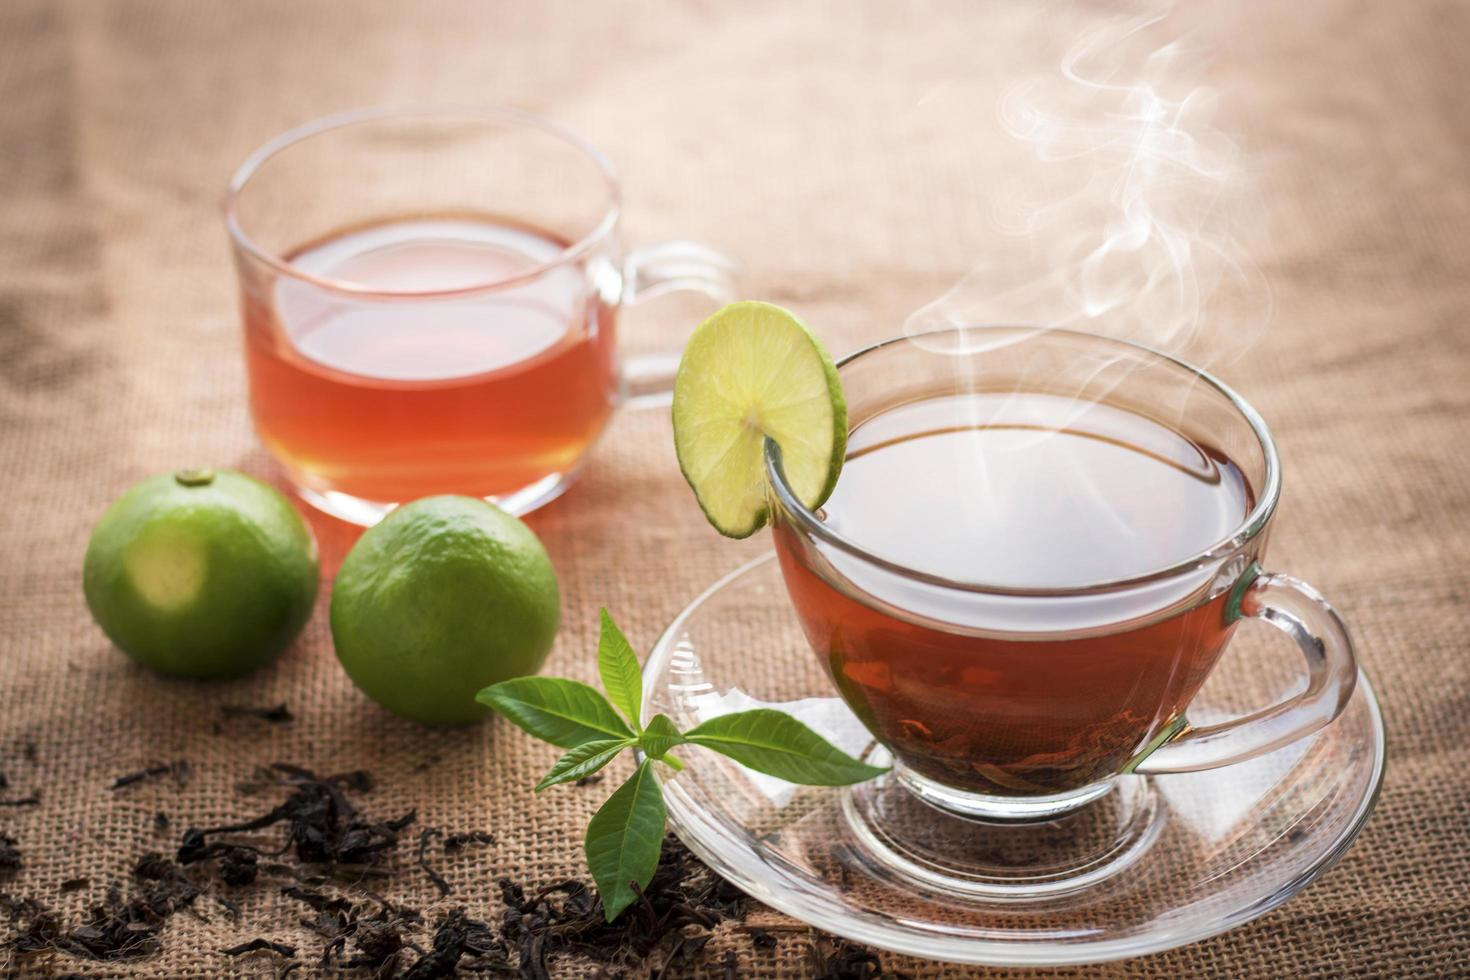 Hot tea of cup with slice of lemon photo